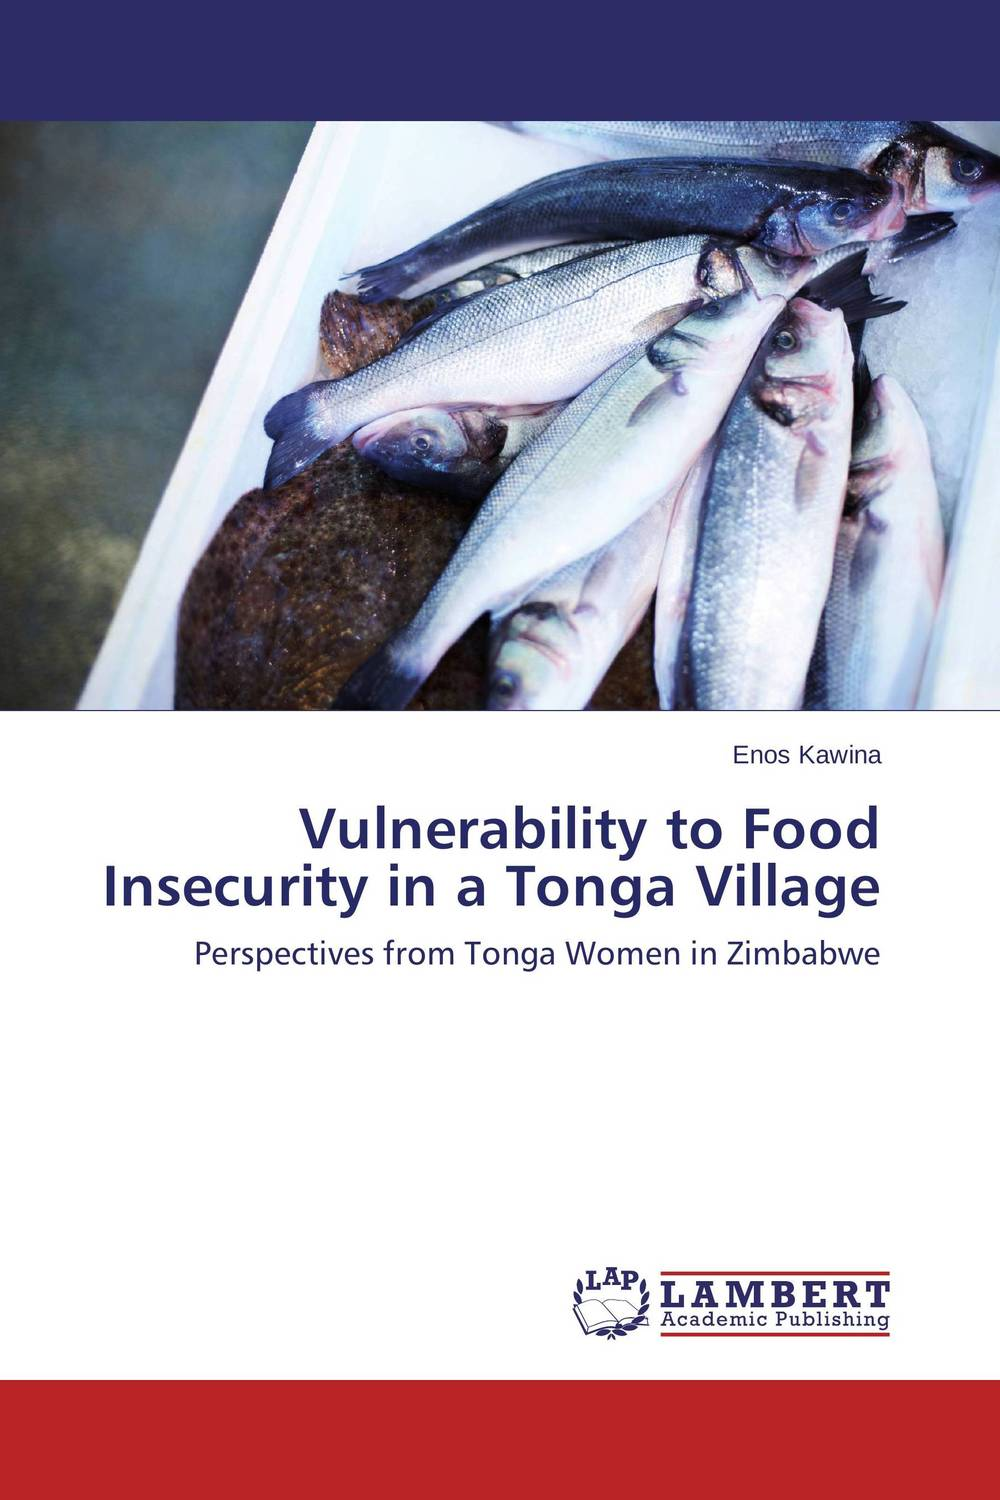 Vulnerability to Food Insecurity in a Tonga Village abandoned villages